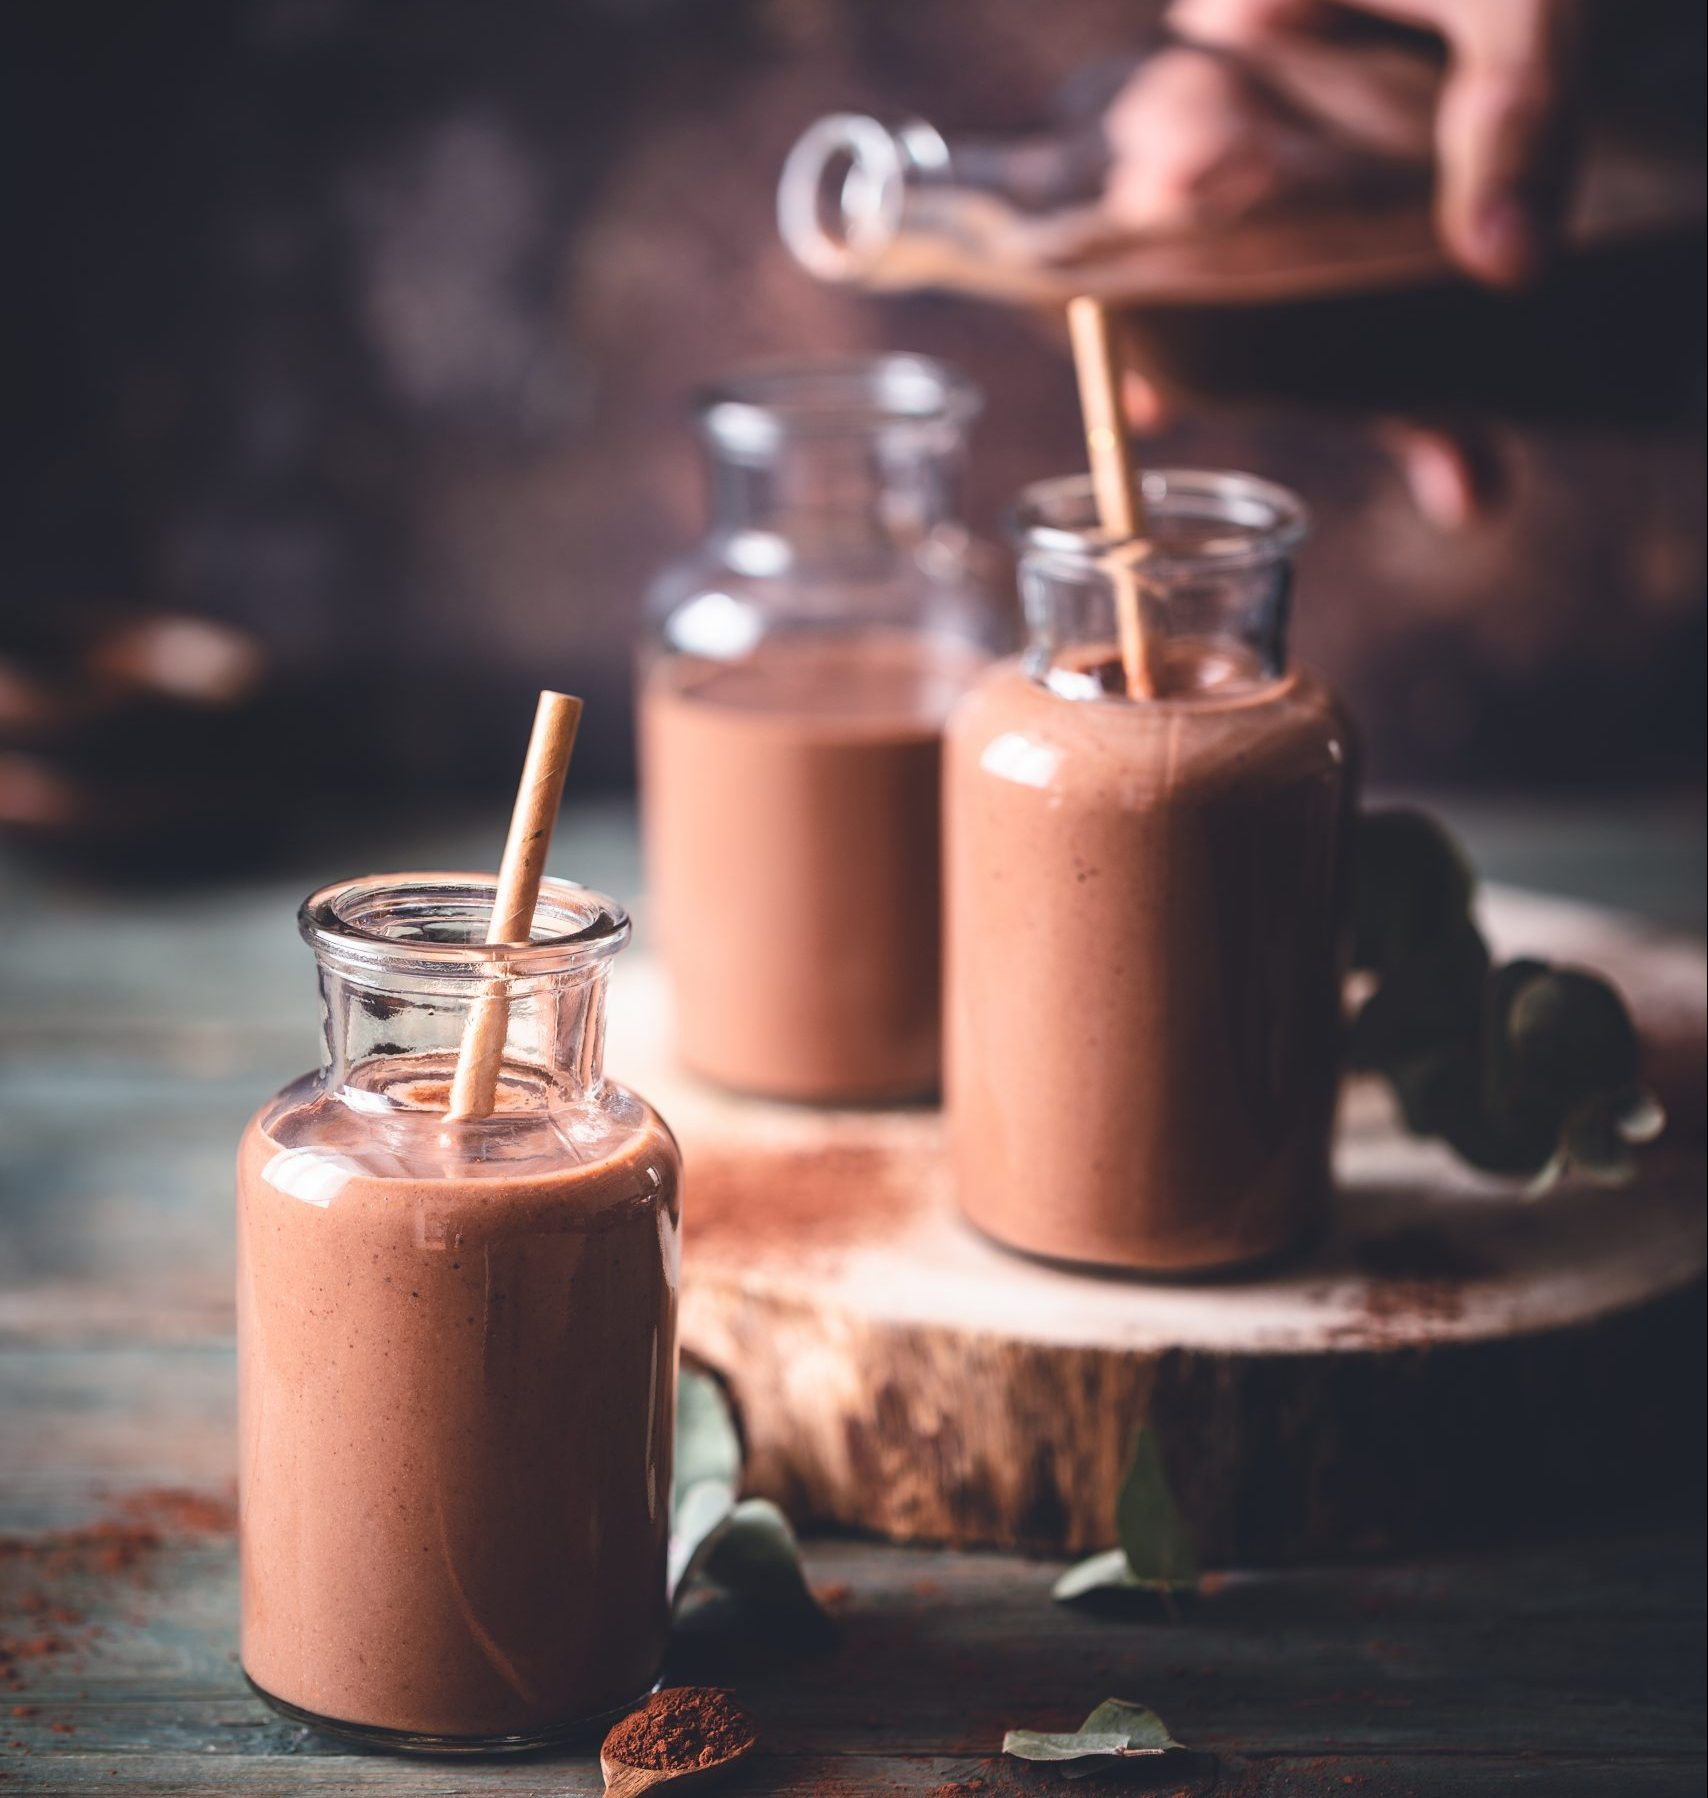 Chocolate milkshake presented in a milk bottle with a straw.